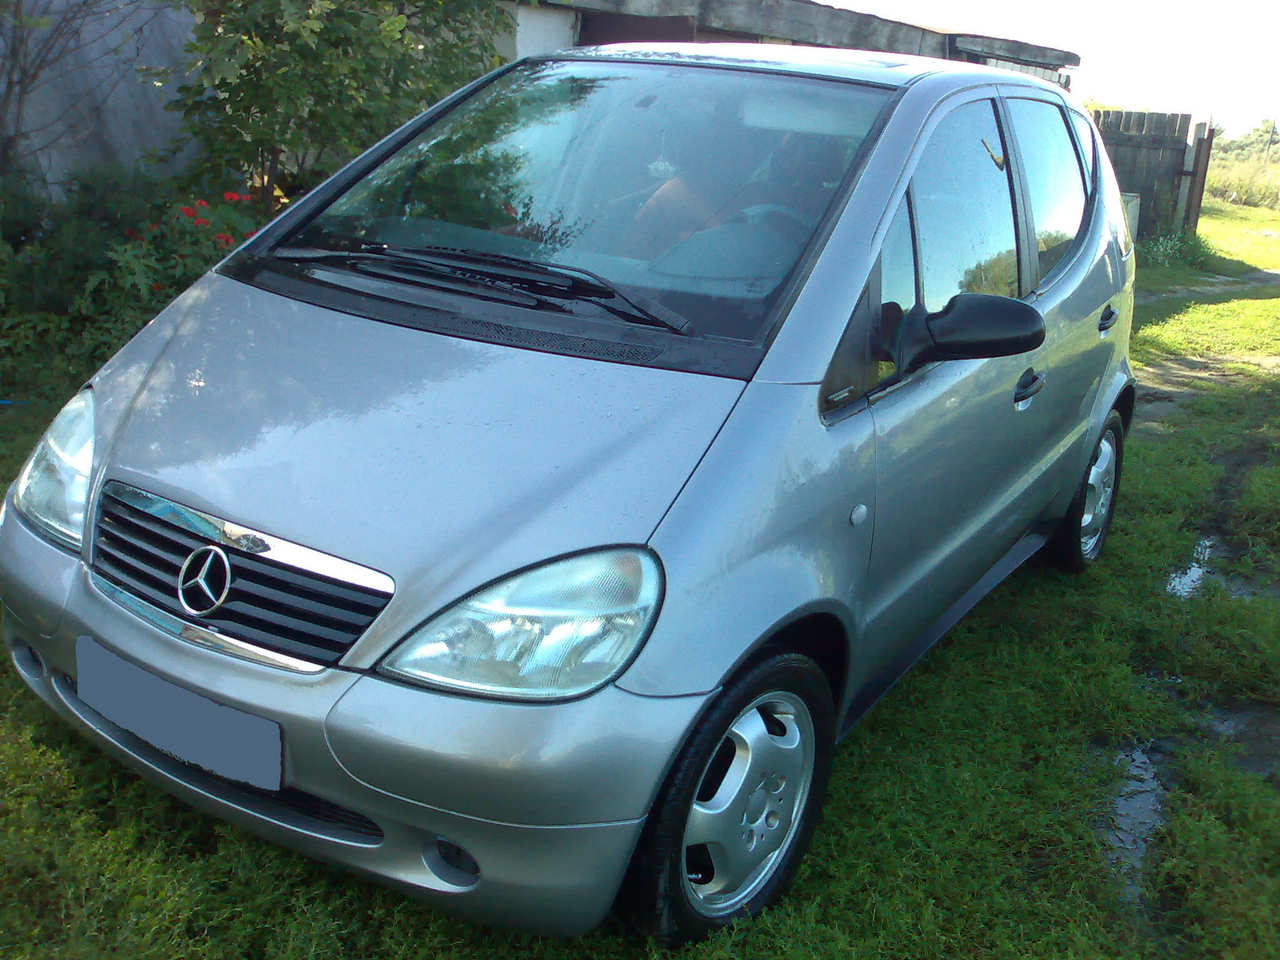 1999 mercedes benz a class pictures 1700cc diesel ff automatic for sale. Black Bedroom Furniture Sets. Home Design Ideas